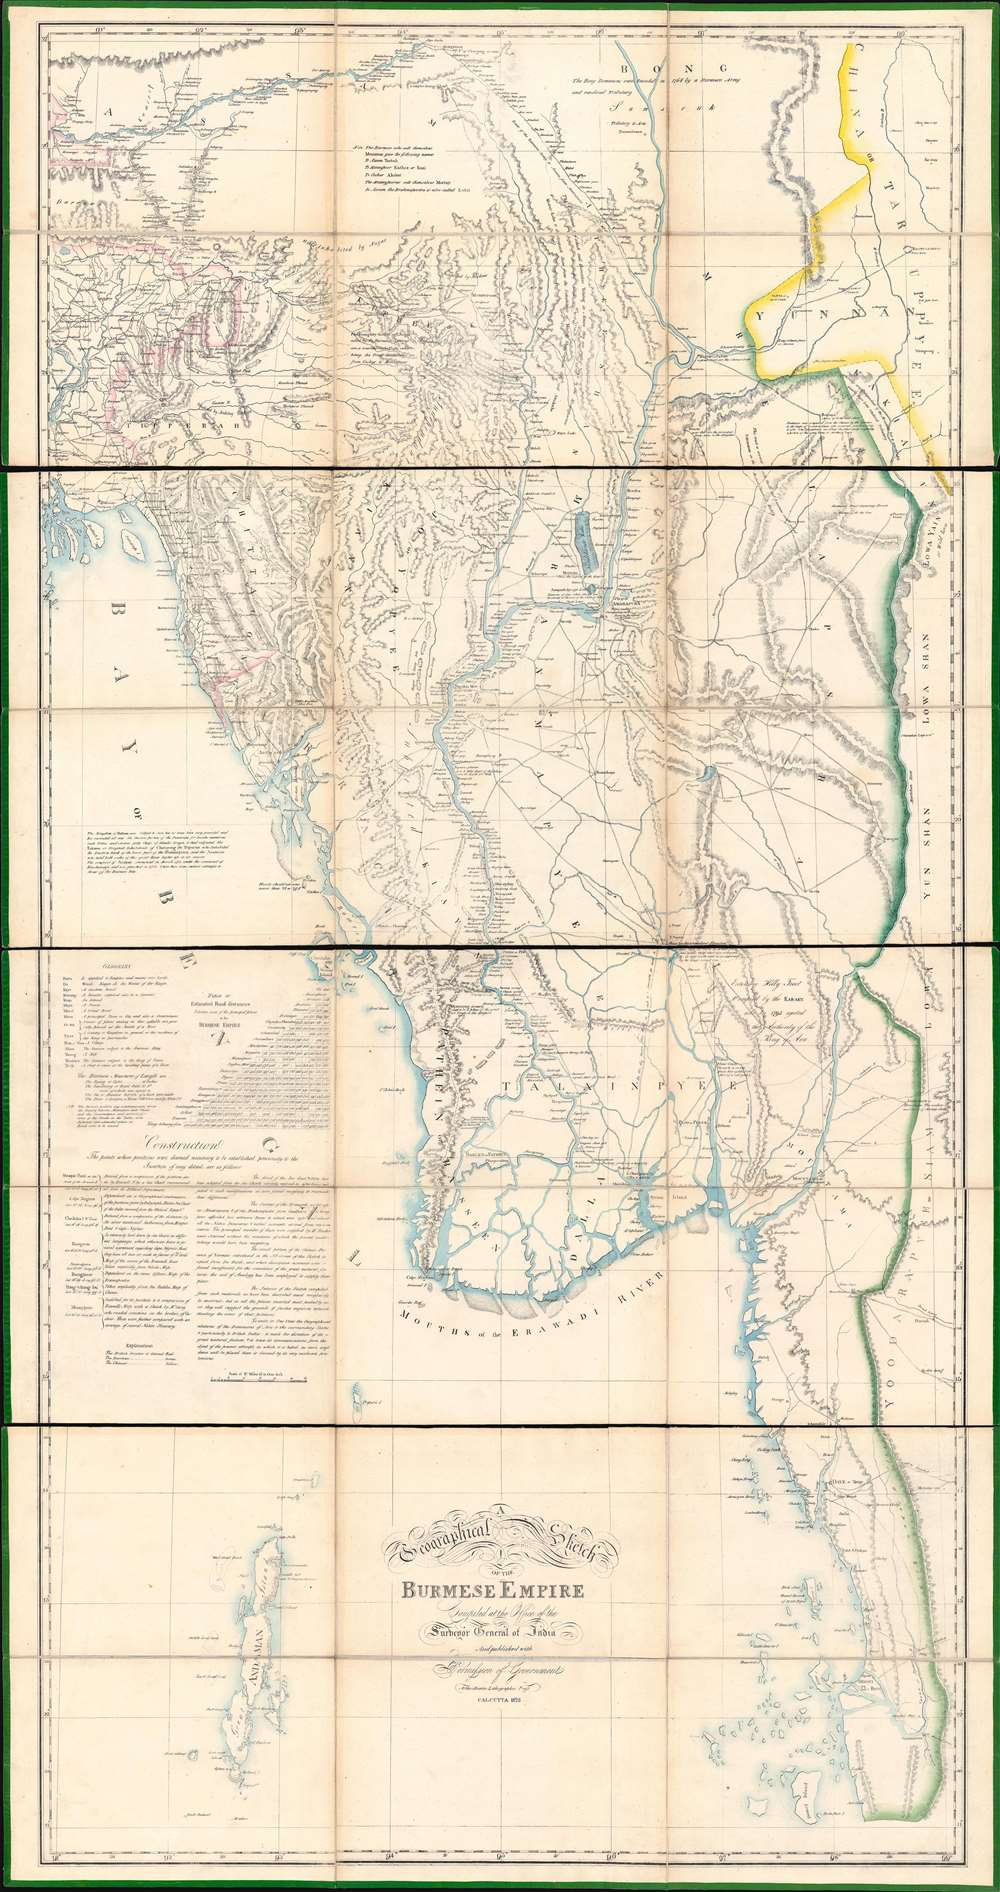 1825 Asiatic Lithographic / QMG Map of Burma (First Anglo-Burmesae War)